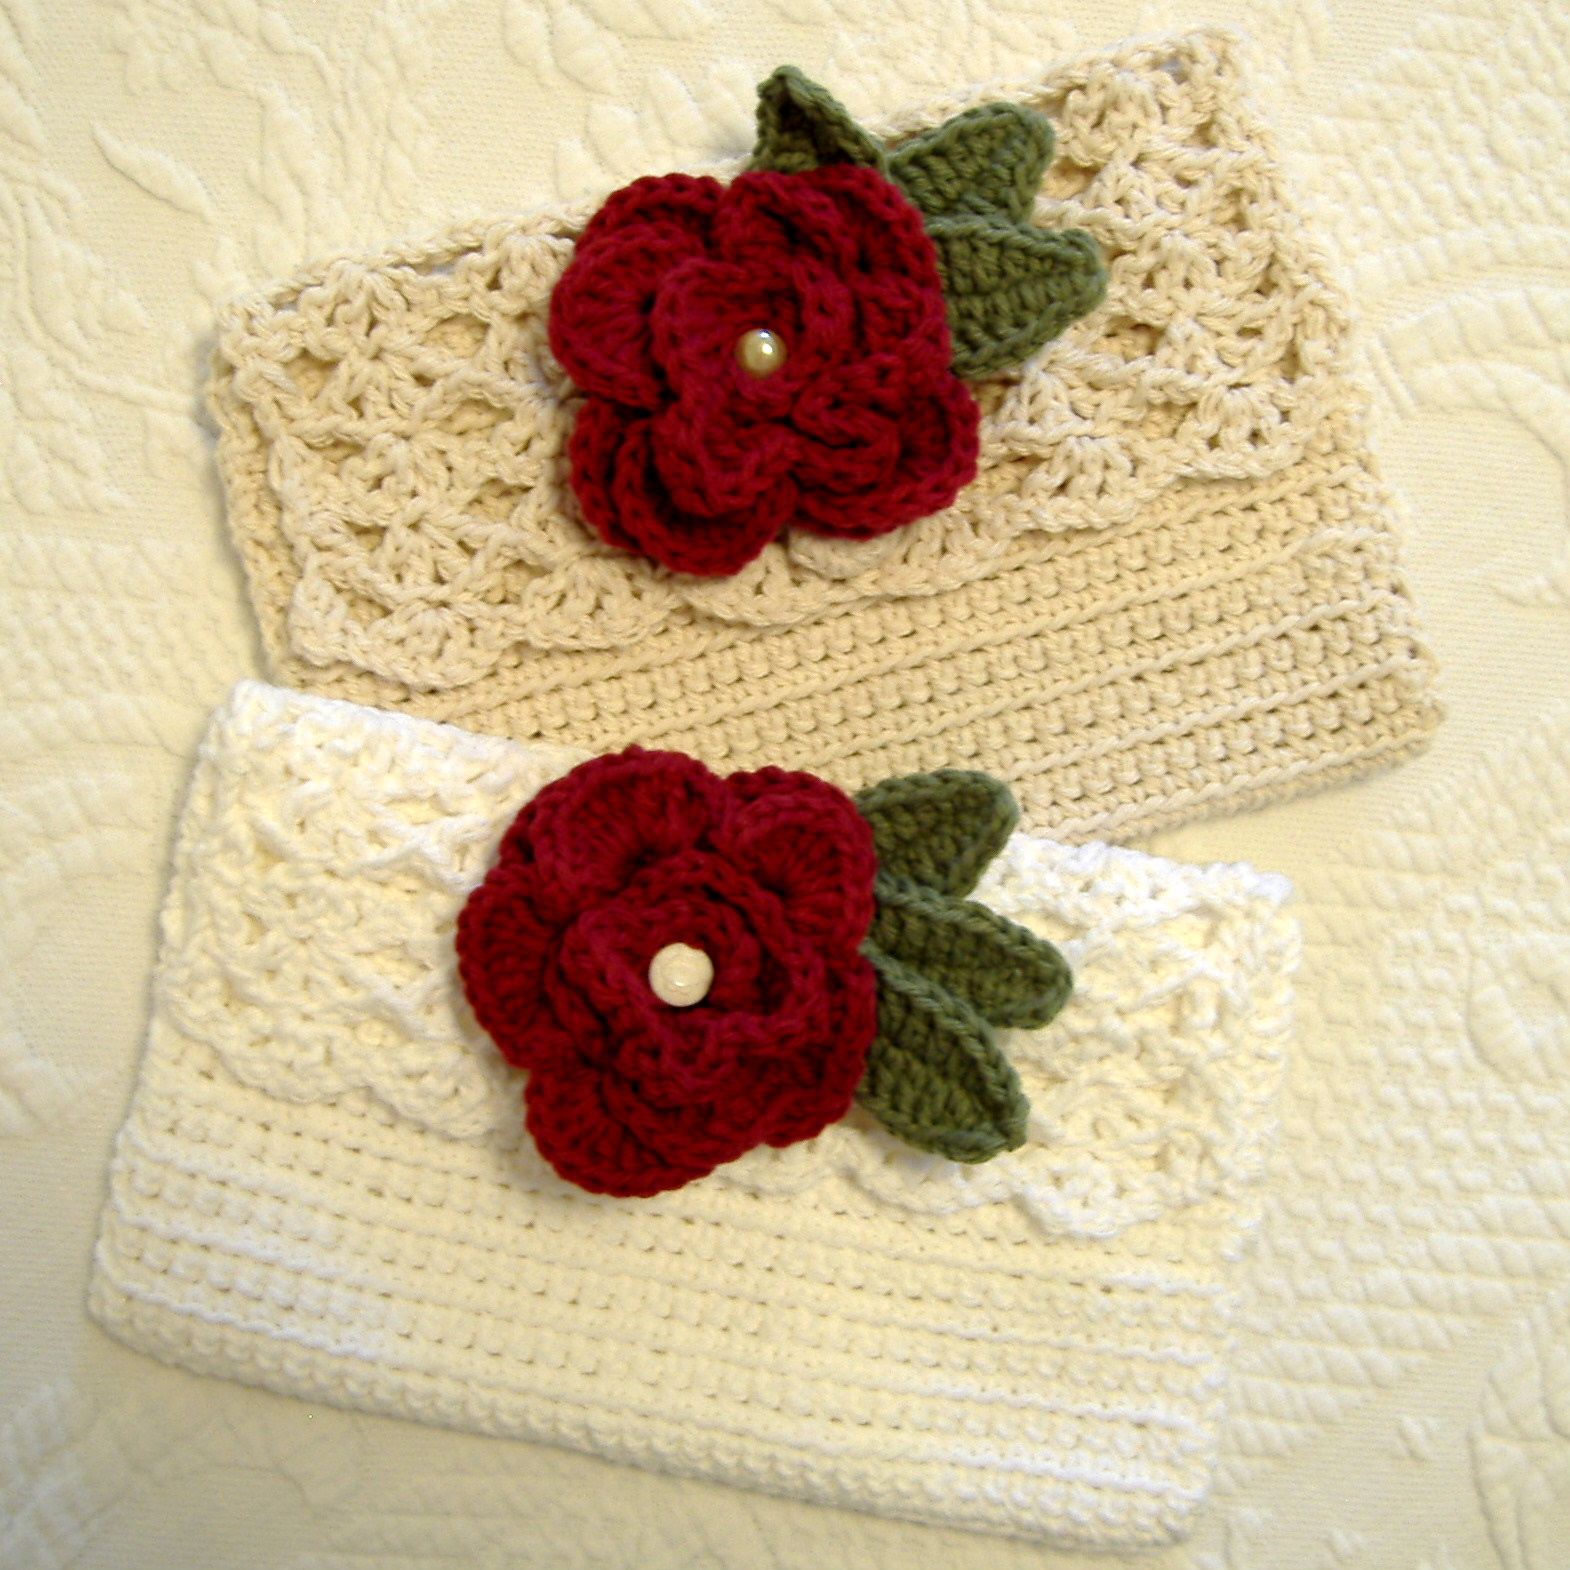 Free Crochet Patterns For Purses : CROCHET PATTERNS PURSES ? Patterns